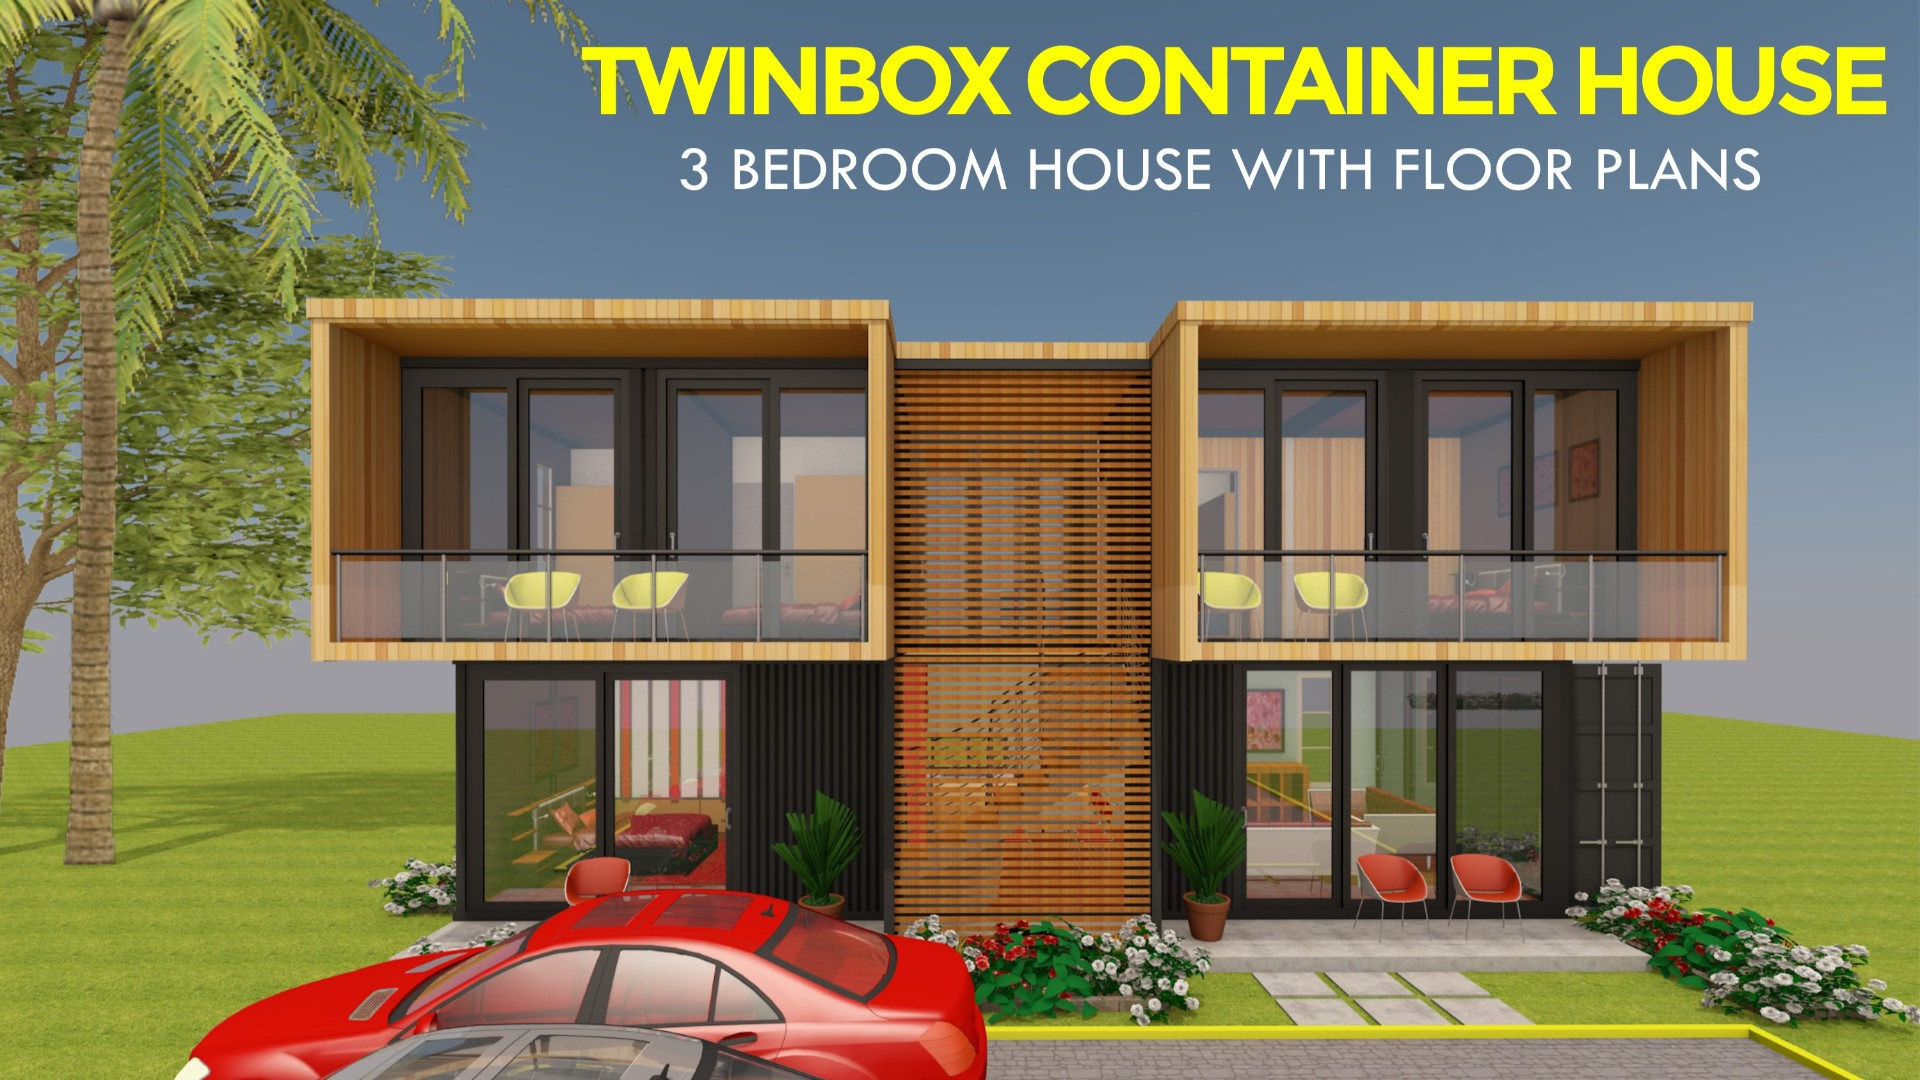 3 Bedroom Prefab Shipping Container Home Design Twinbox 1280